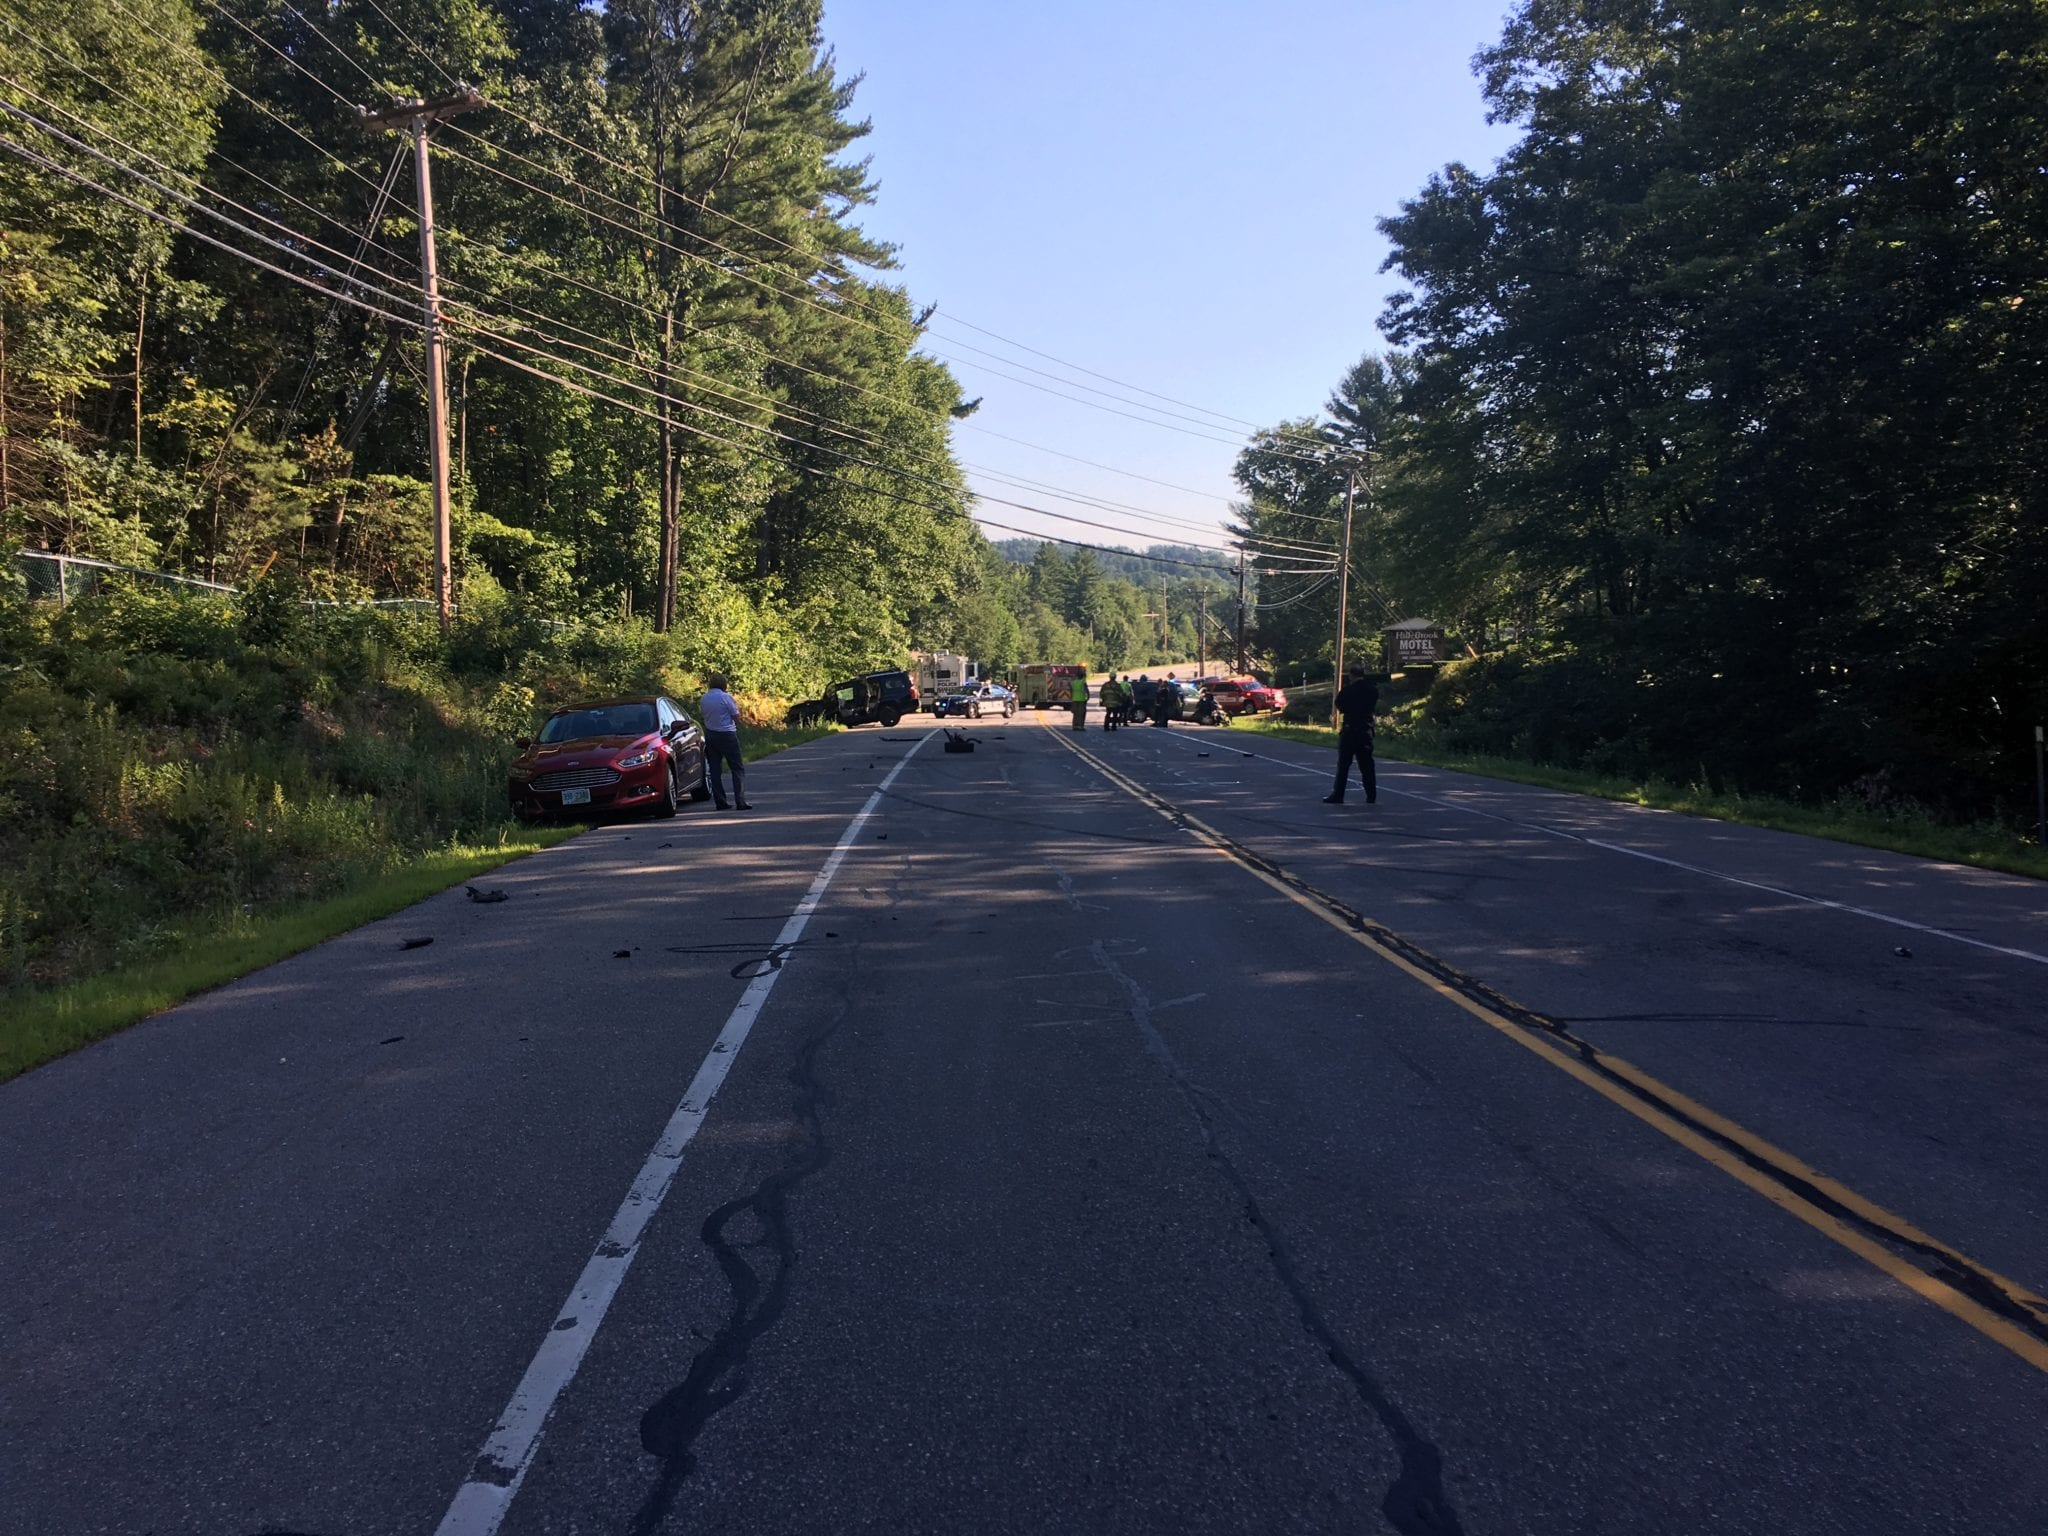 Bedford, N H  Police Investigating 5-Vehicle Crash on Rt  101